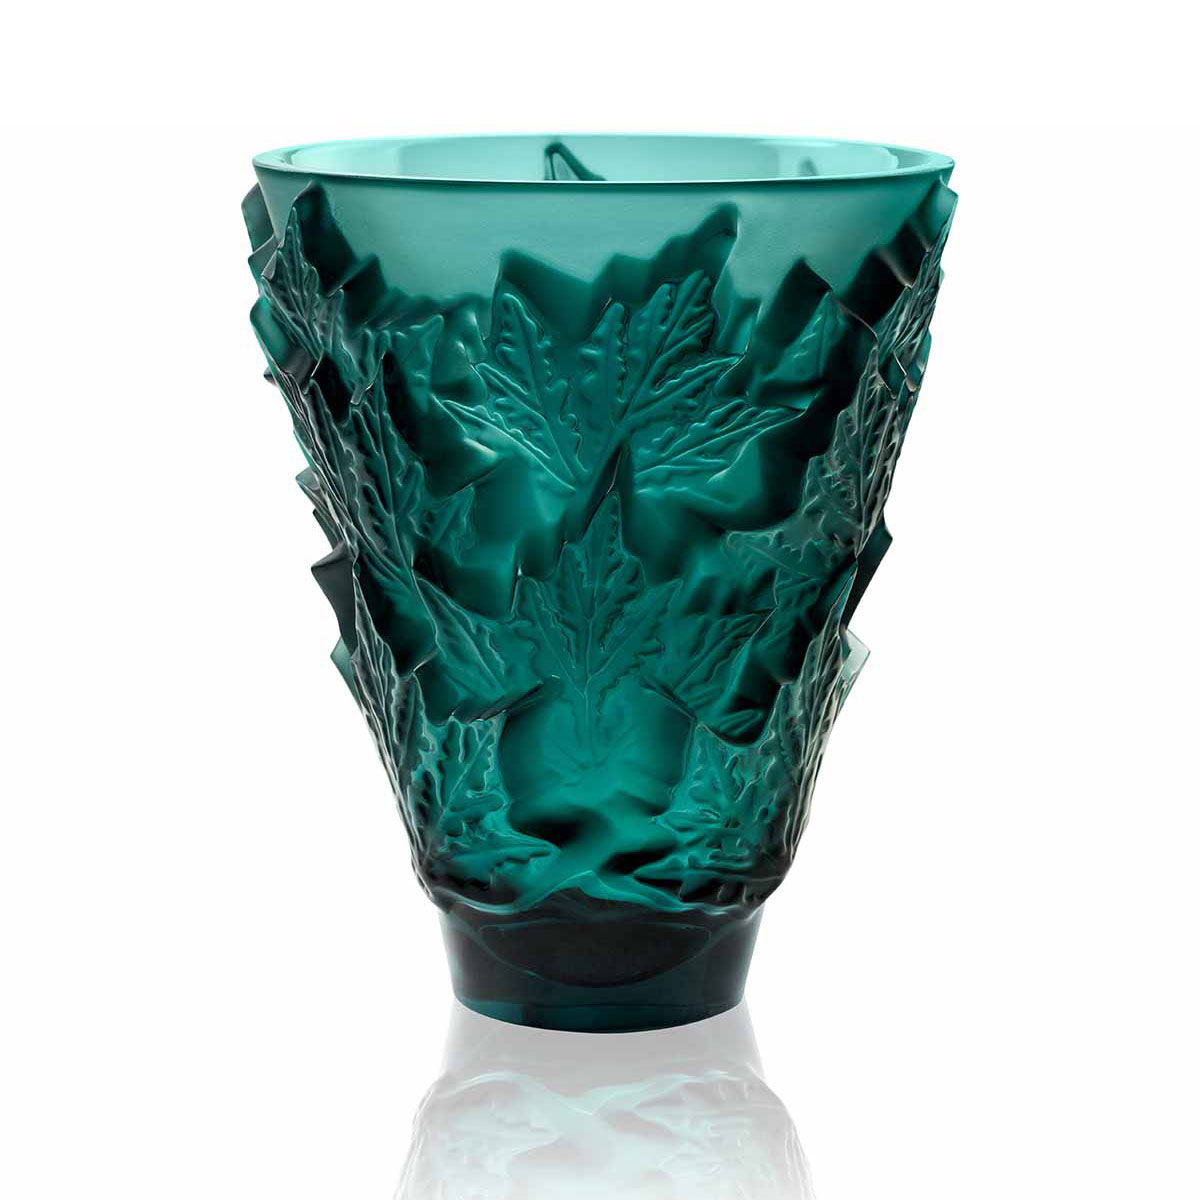 Lalique Crystal, Champs Elysees Small Crystal Vase, Intense Green